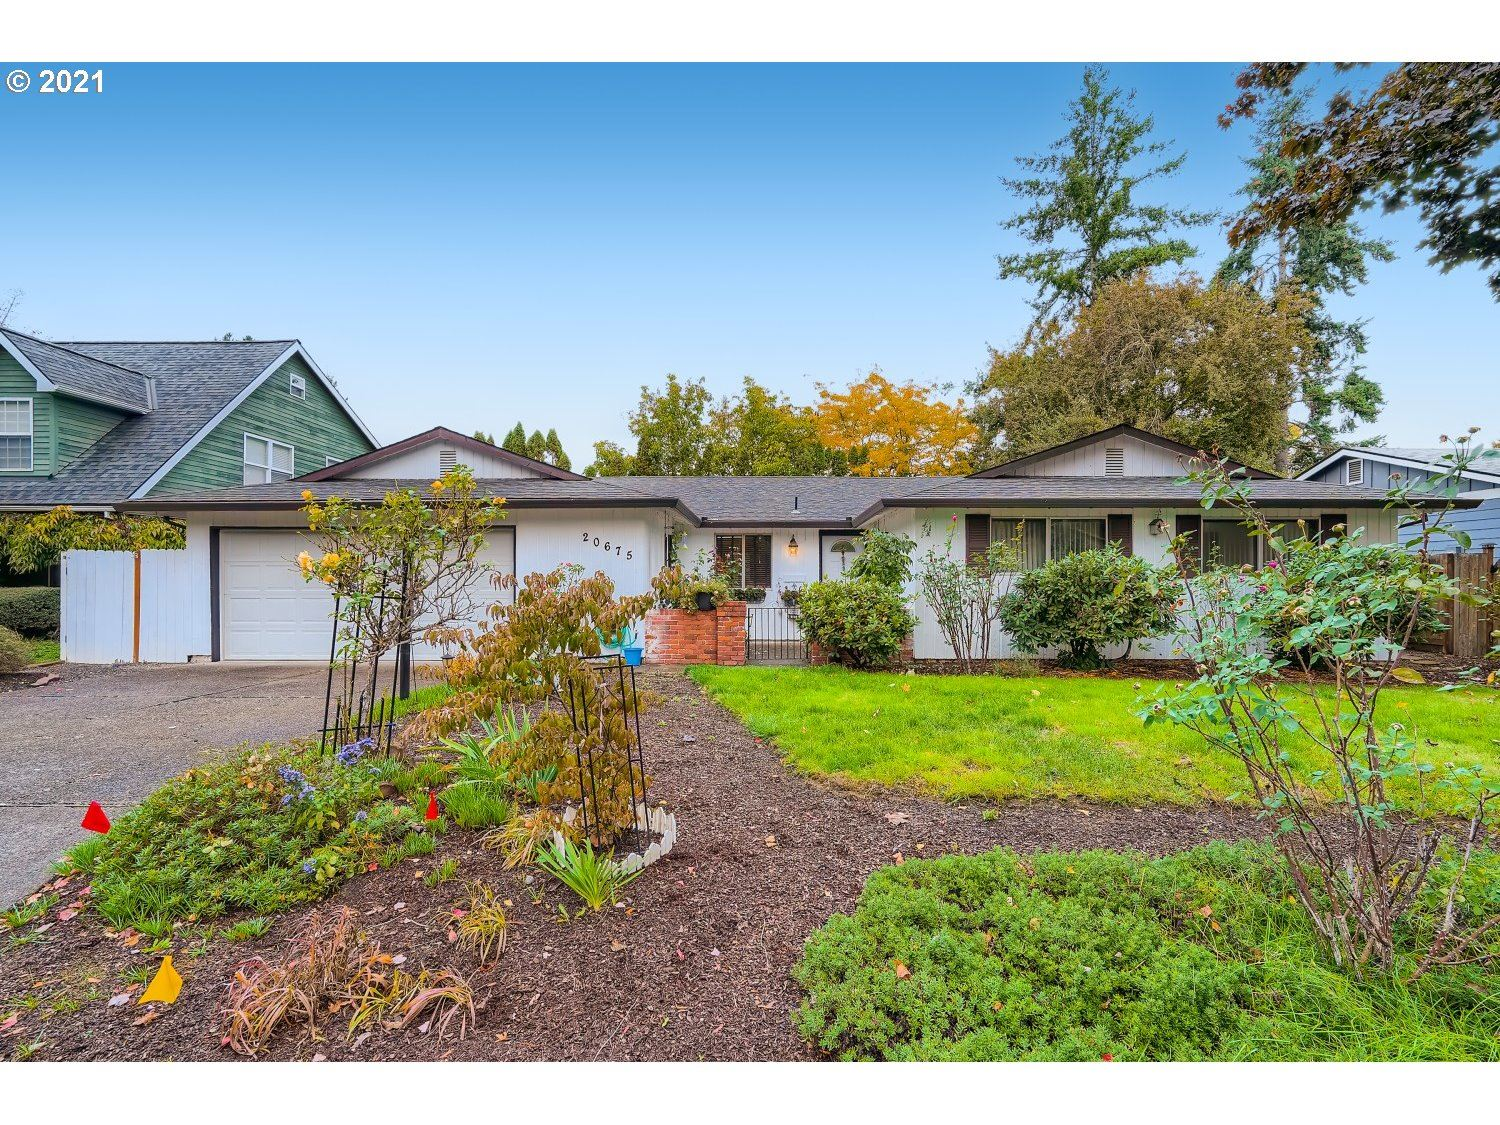 Photo of 20675 SW ROSA DR, Aloha, OR 97078 (MLS # 21585354)